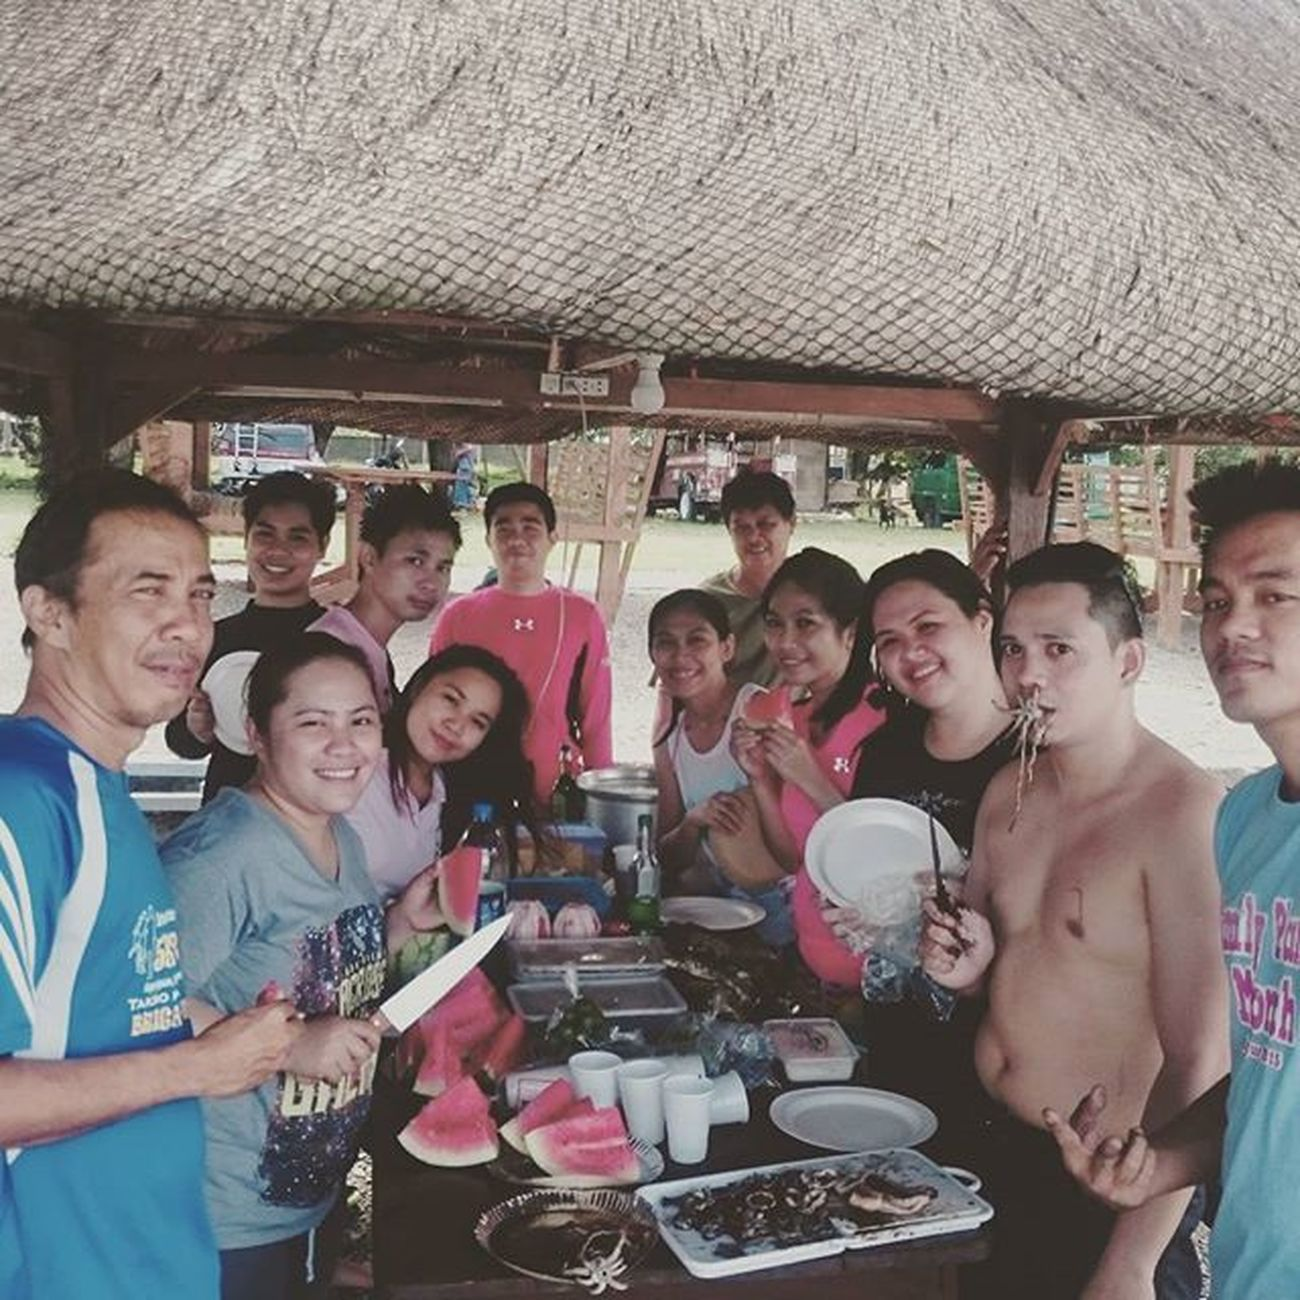 HAPPY BAYWATCH PESKIES. November182015 Escapade PlainHappiness